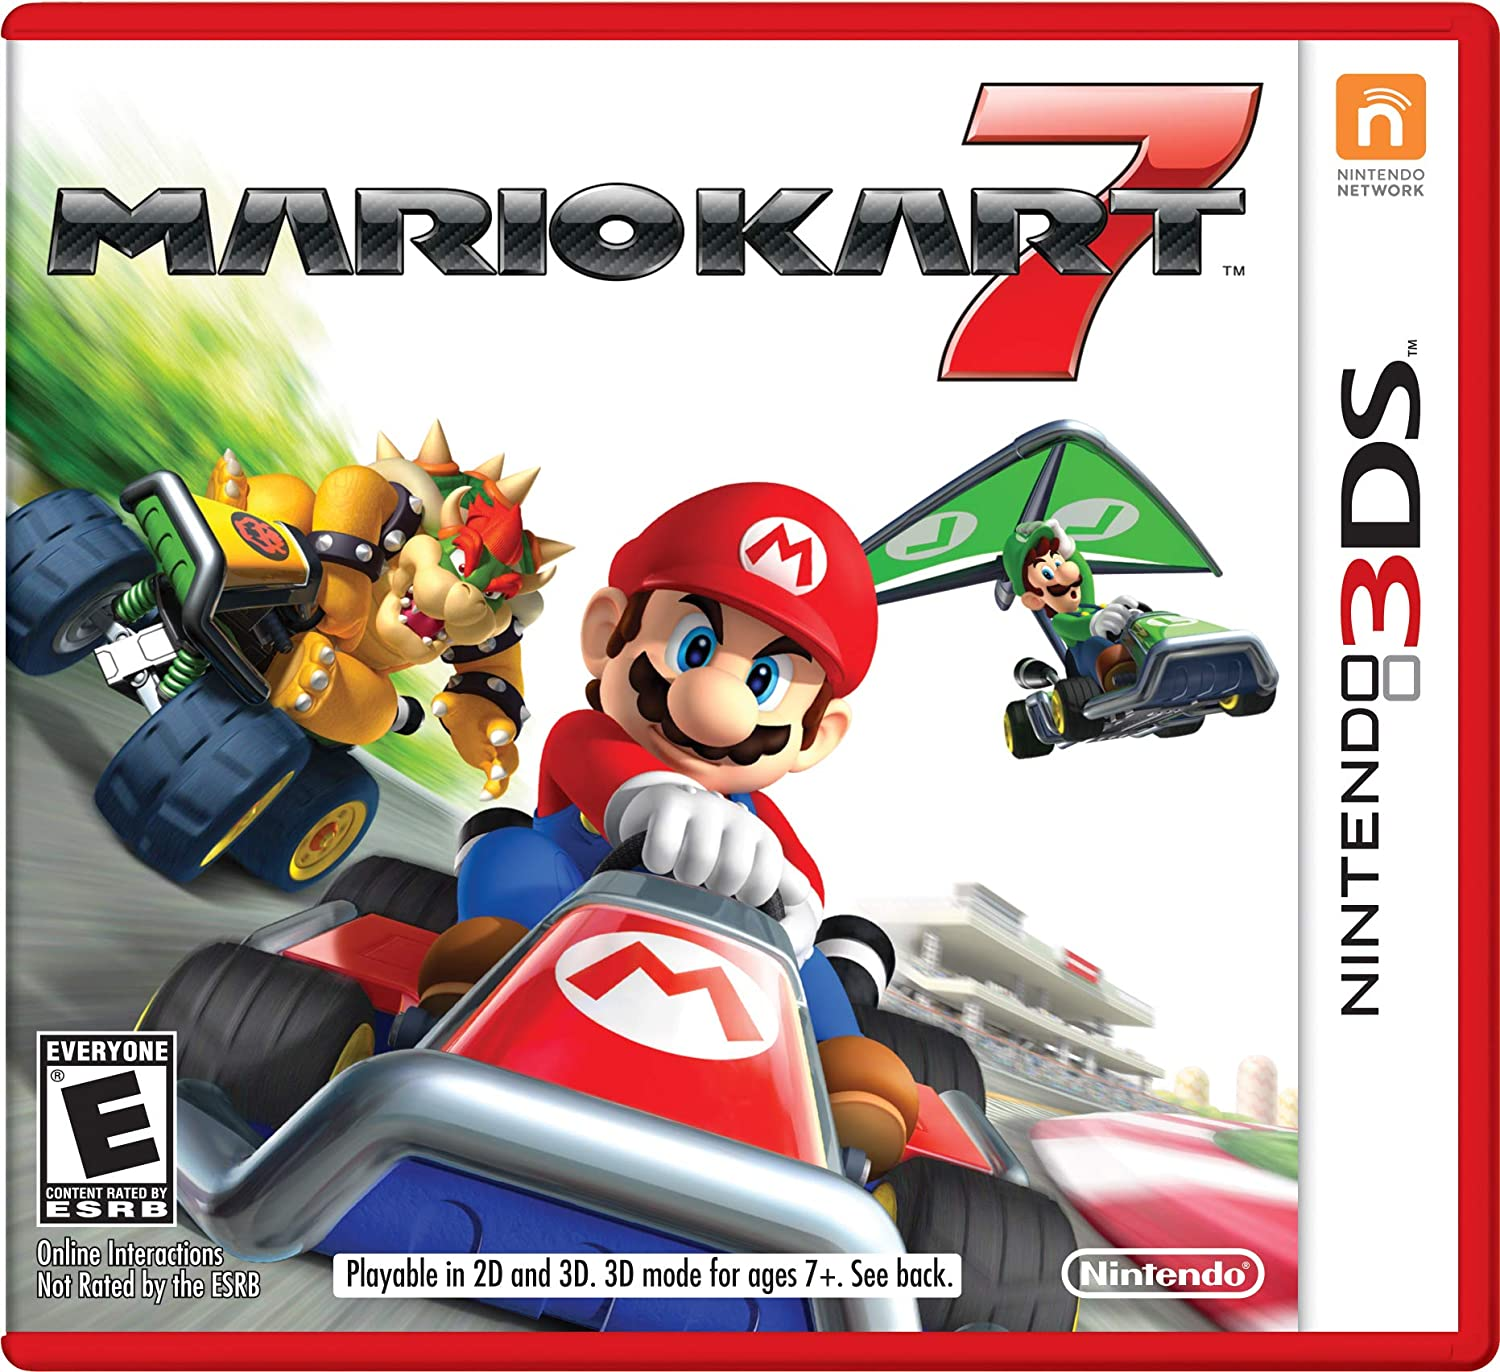 mario kart Amazon.com: Mario Kart 7: Nintendo of America: Video Games